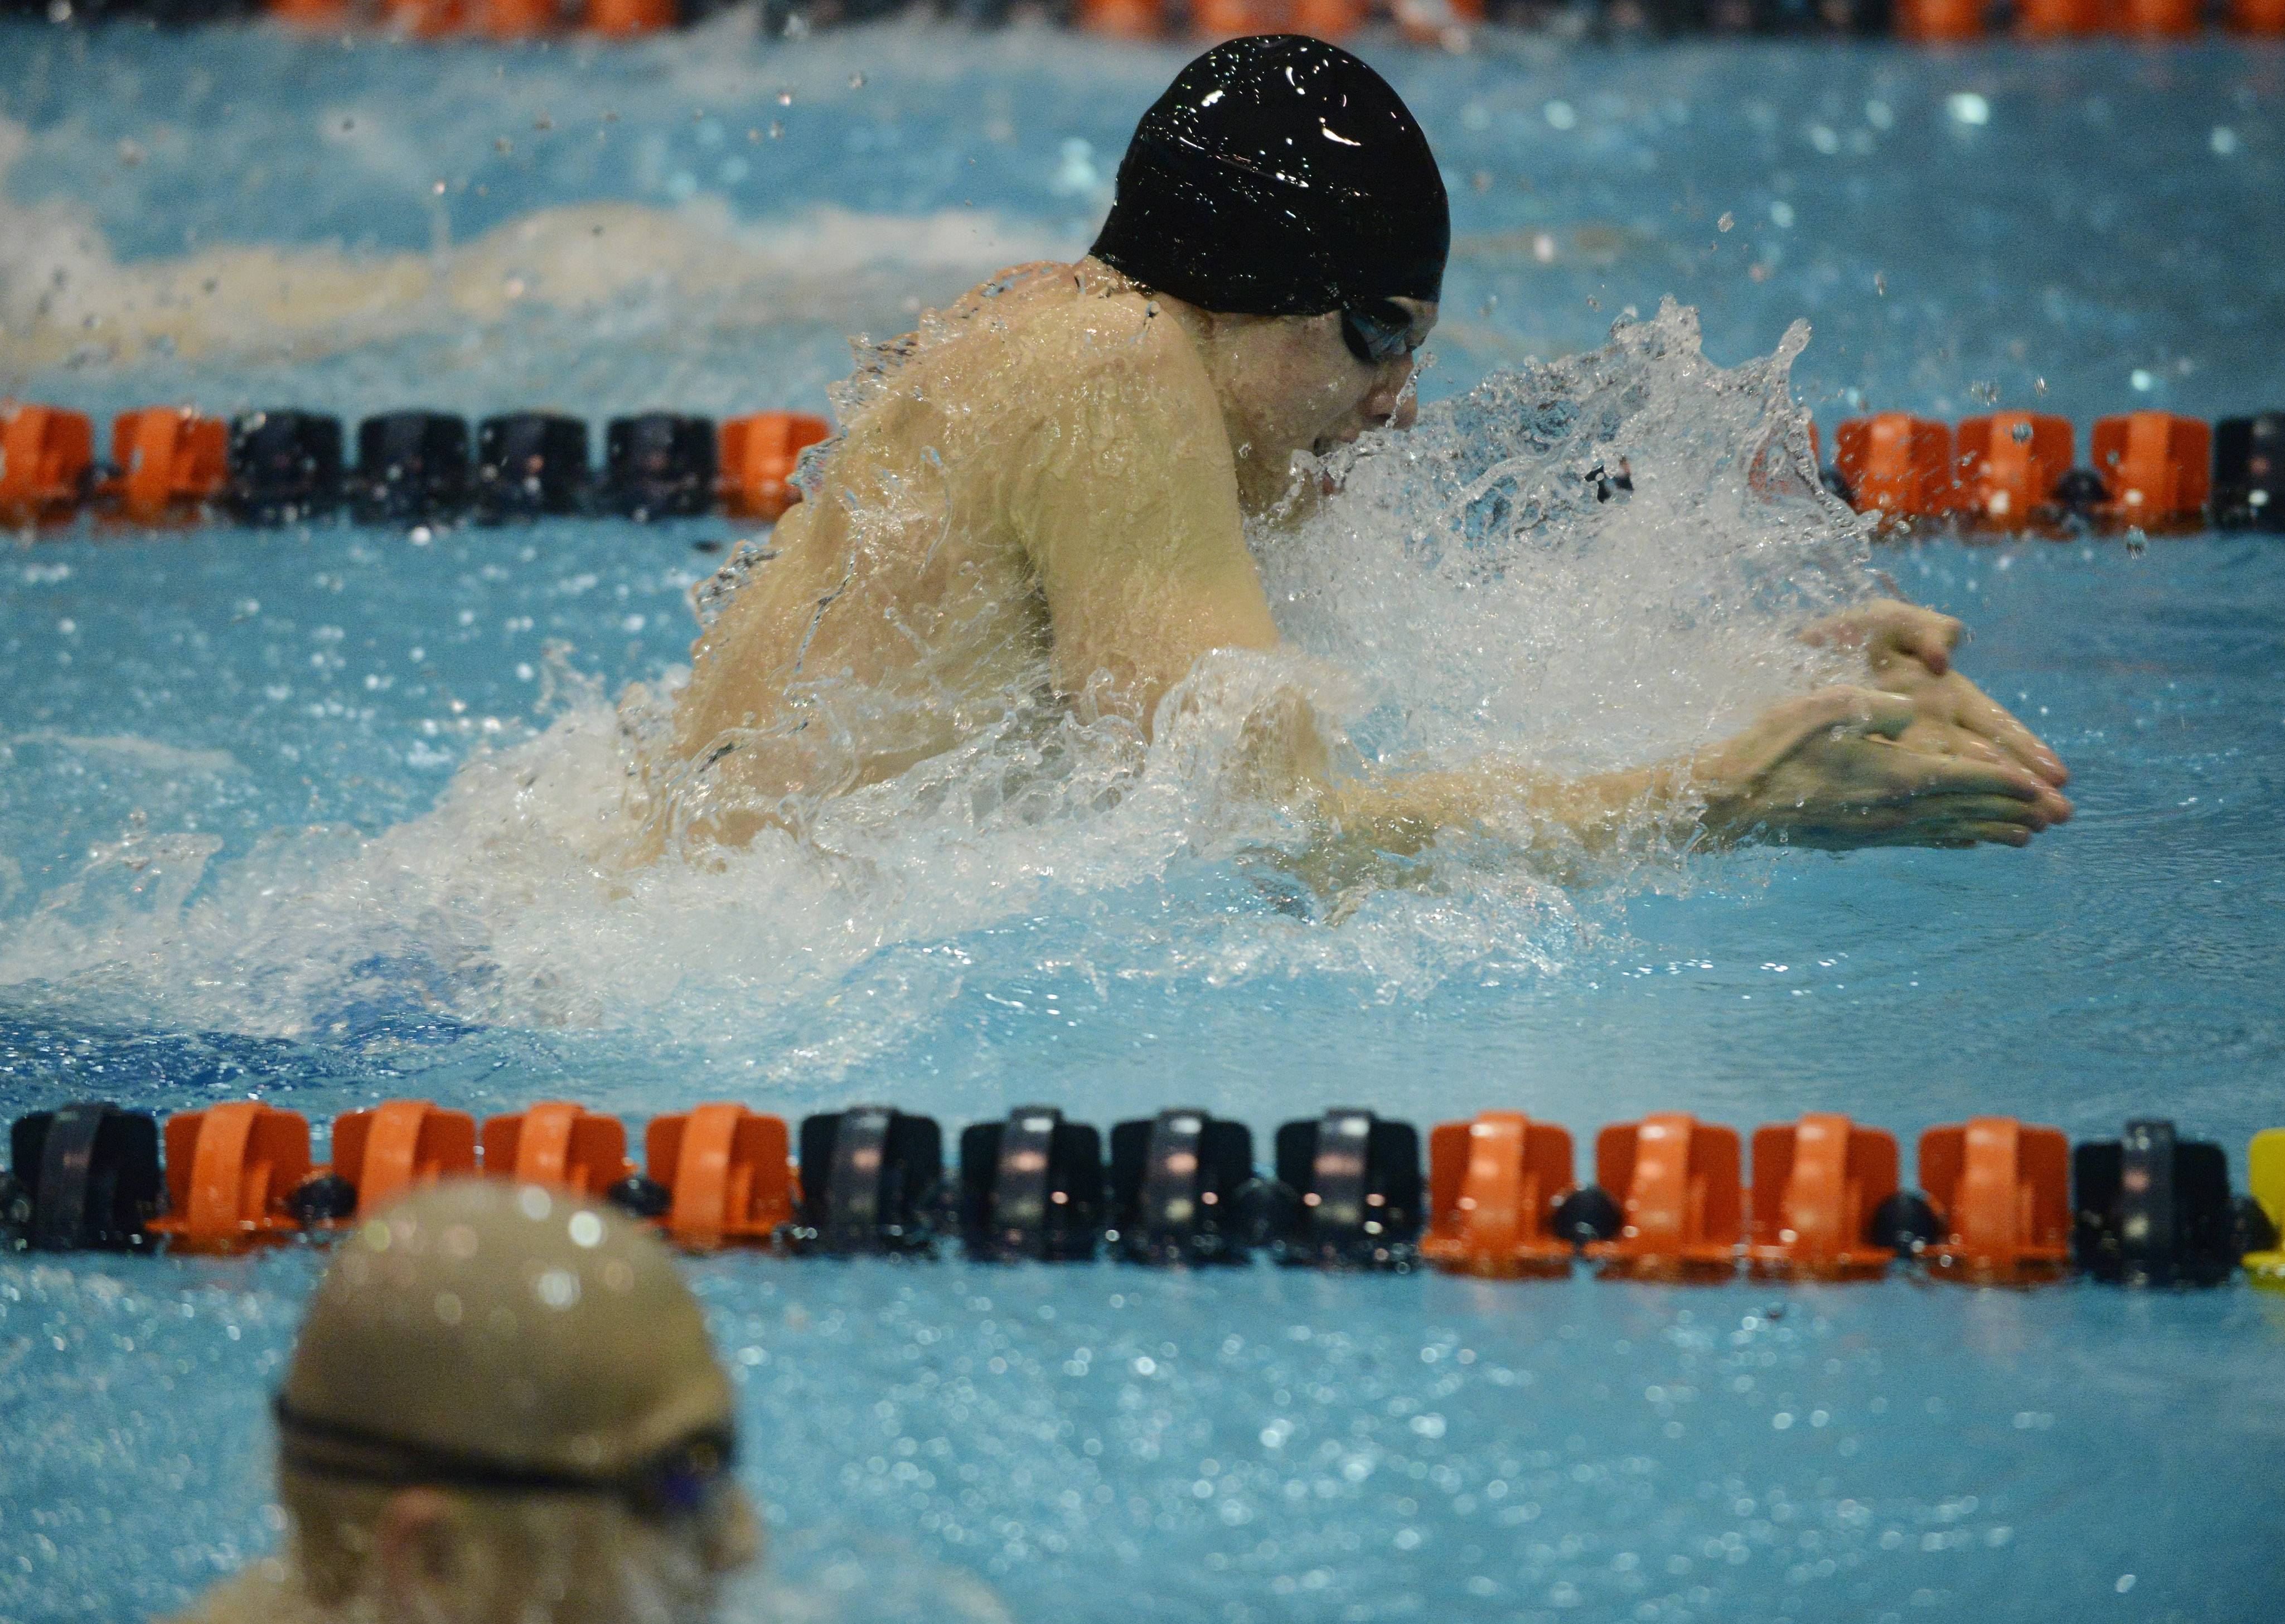 Jordan O'Brien of Matea Valley swims toward a win in the 100-yard breaststroke during the boys state swimming meet at Evanston High School Saturday.